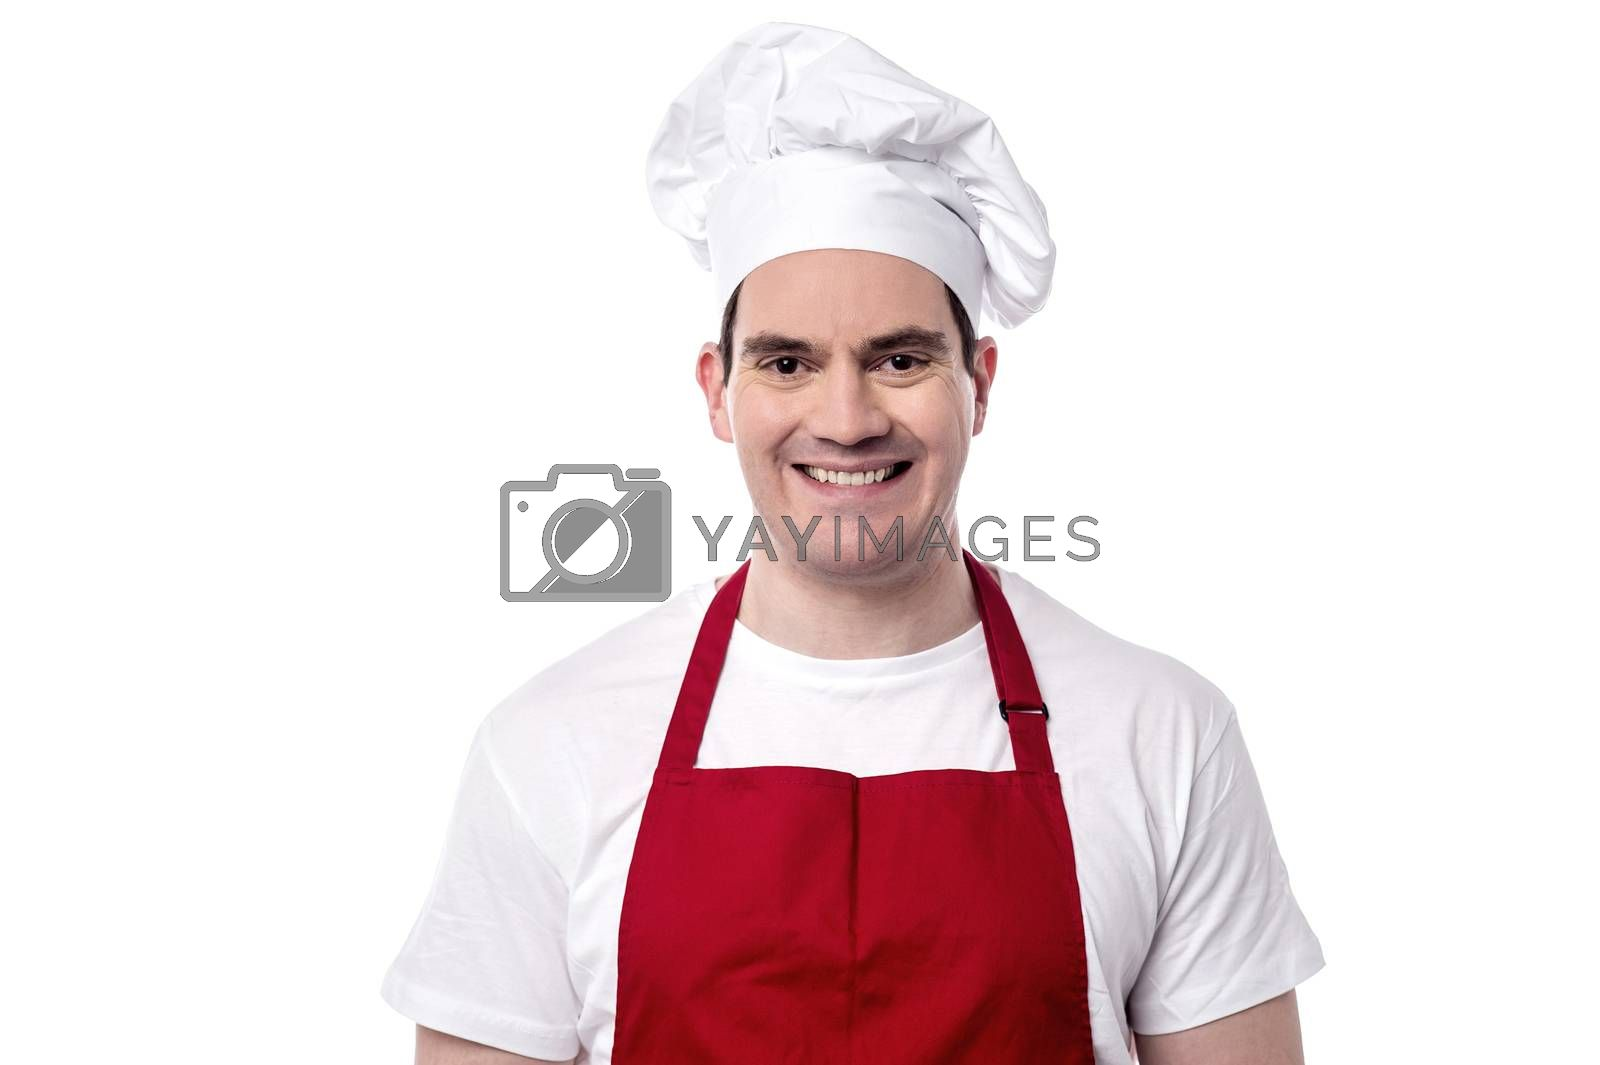 Smiling male chef posing to camera over white